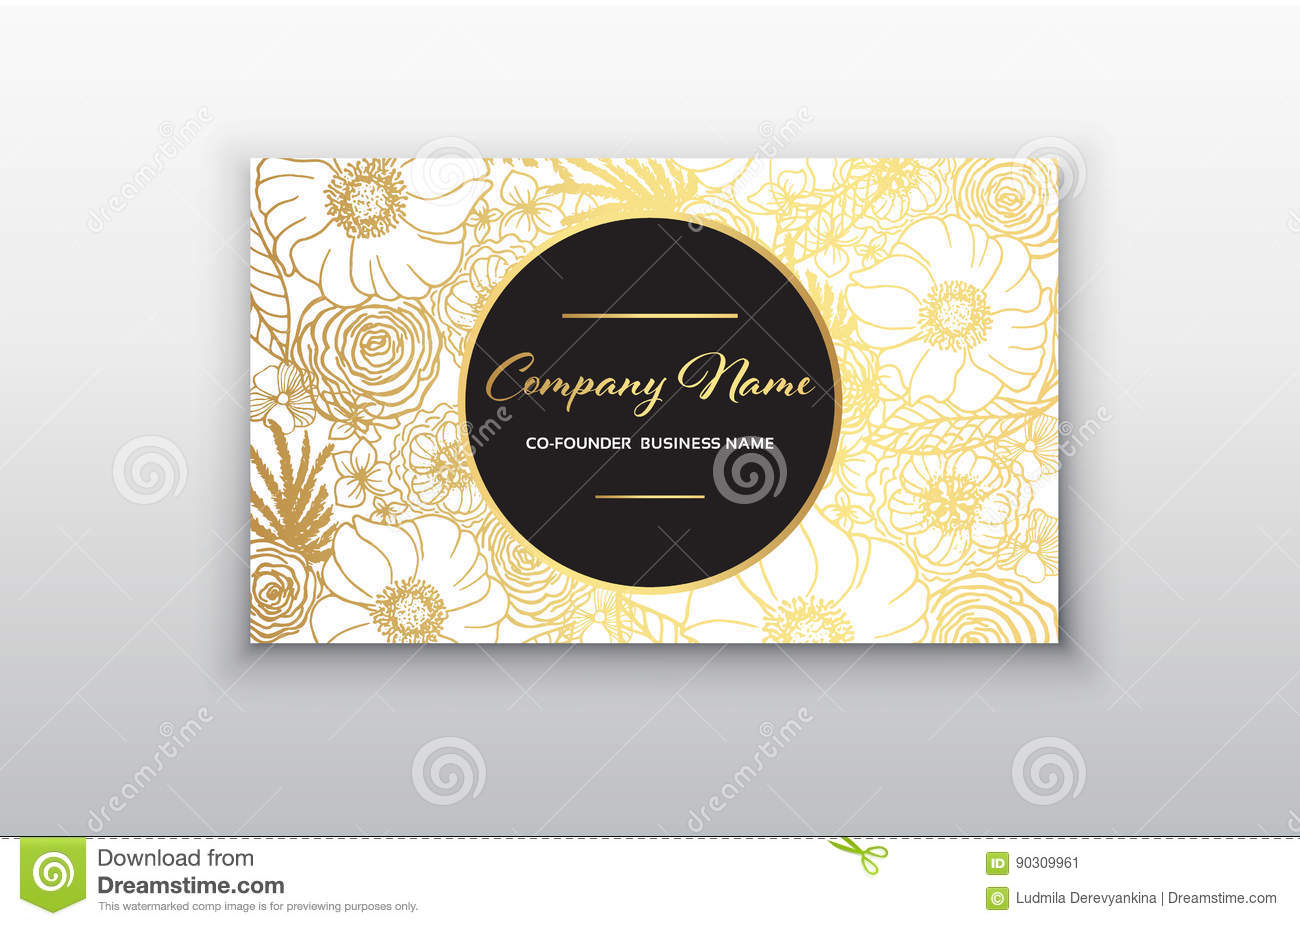 Business Card - Gold Floral Frame. Stylish Golden Premium Luxury ...